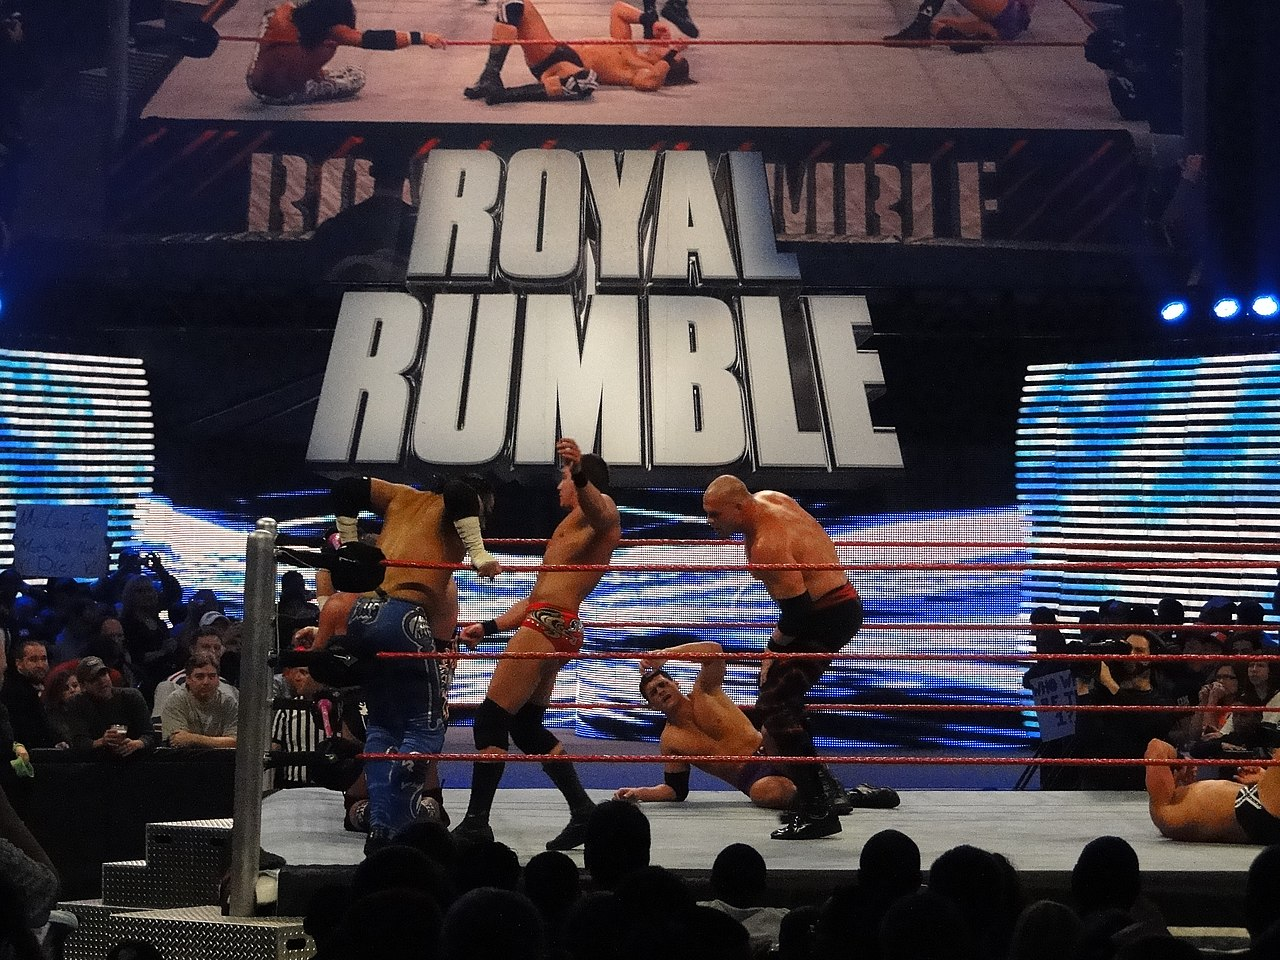 http://commons.wikimedia.org/wiki/File%3ARoyal_Rumble_match.jpg